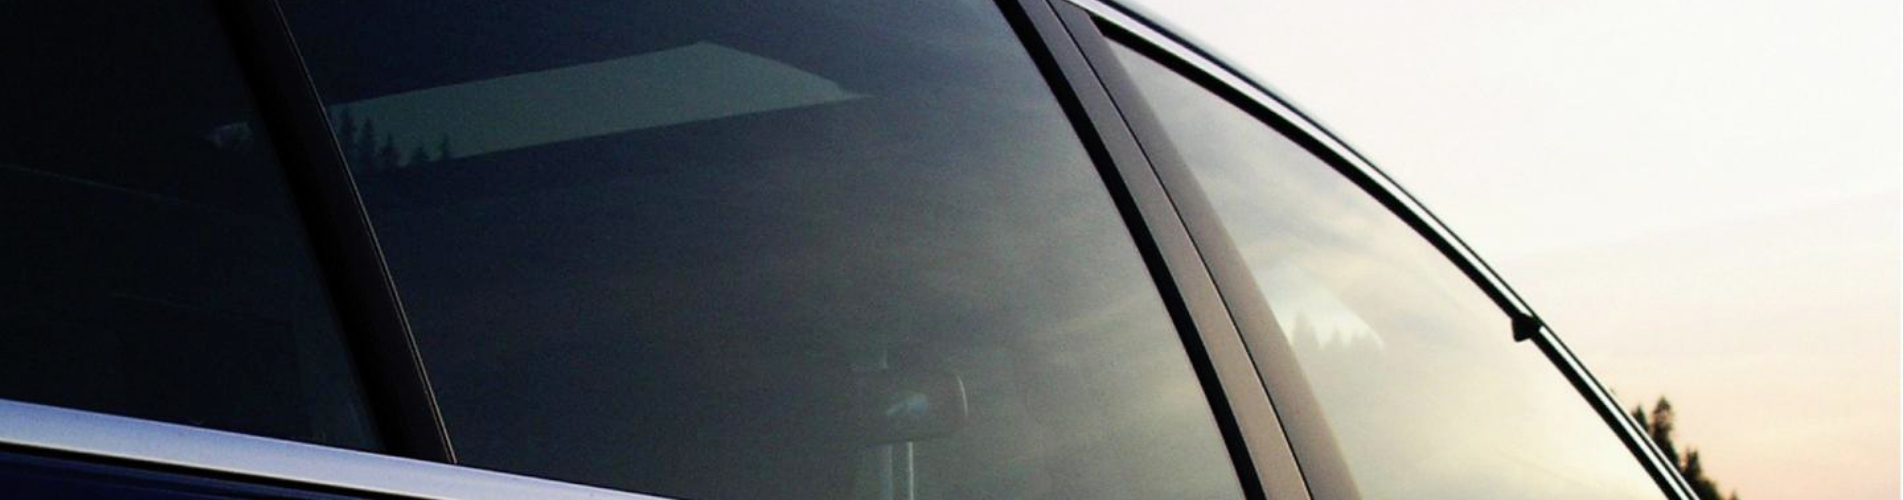 A closeup of a vehicle's tinted windows on the passenger side.